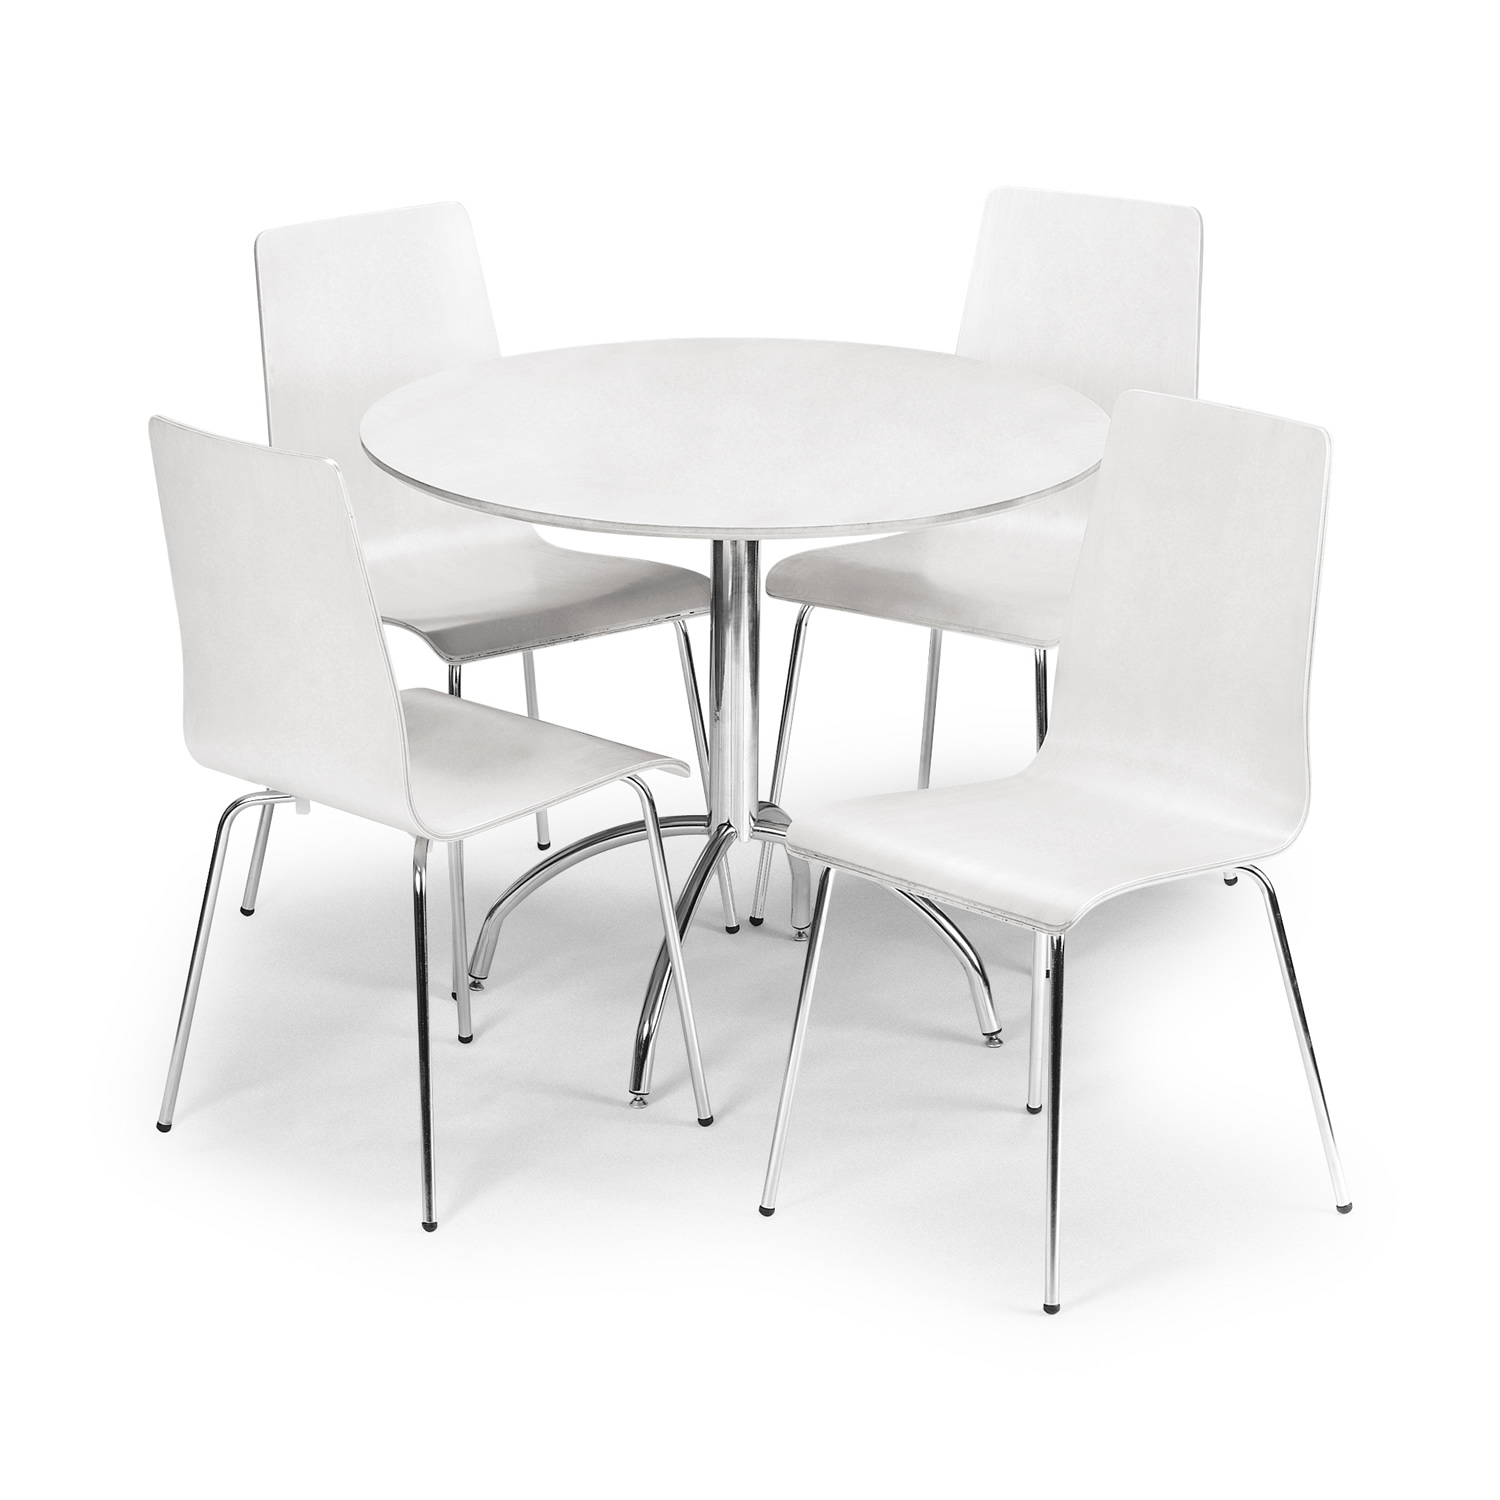 1500x1500 Round White Dining Table On Chrome Pedestal Base Combined By White